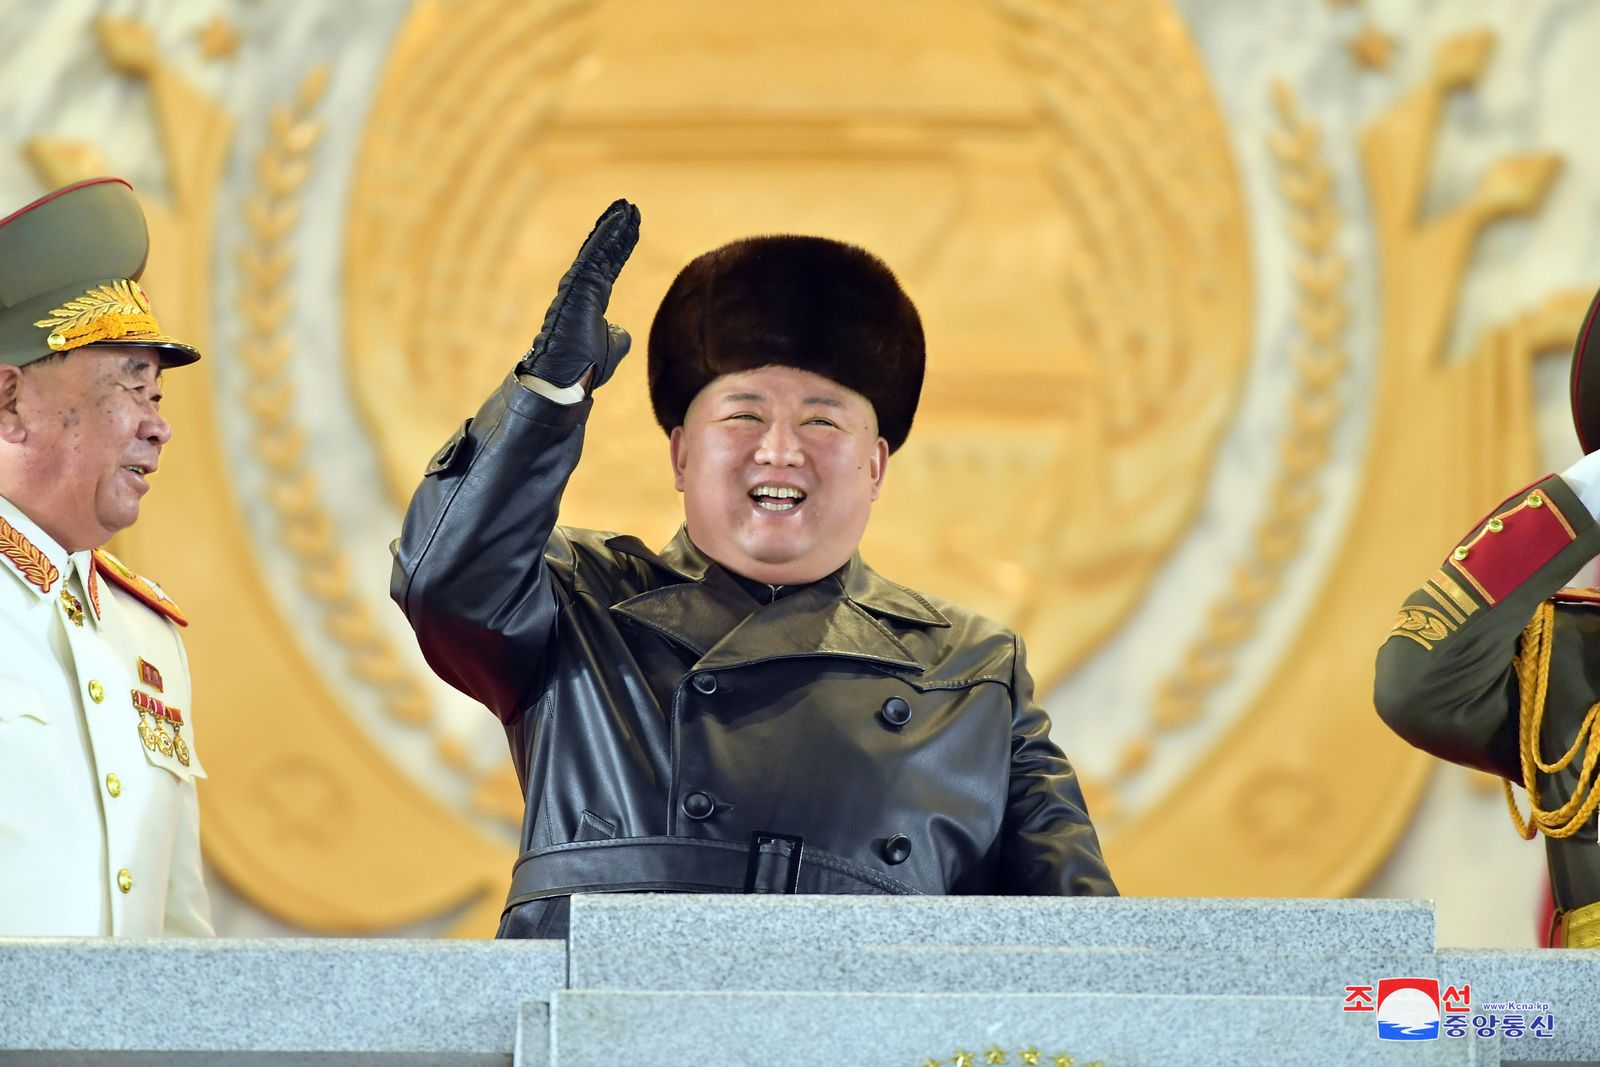 Military parade in Pyongyang, Korea - 14 Jan 2021